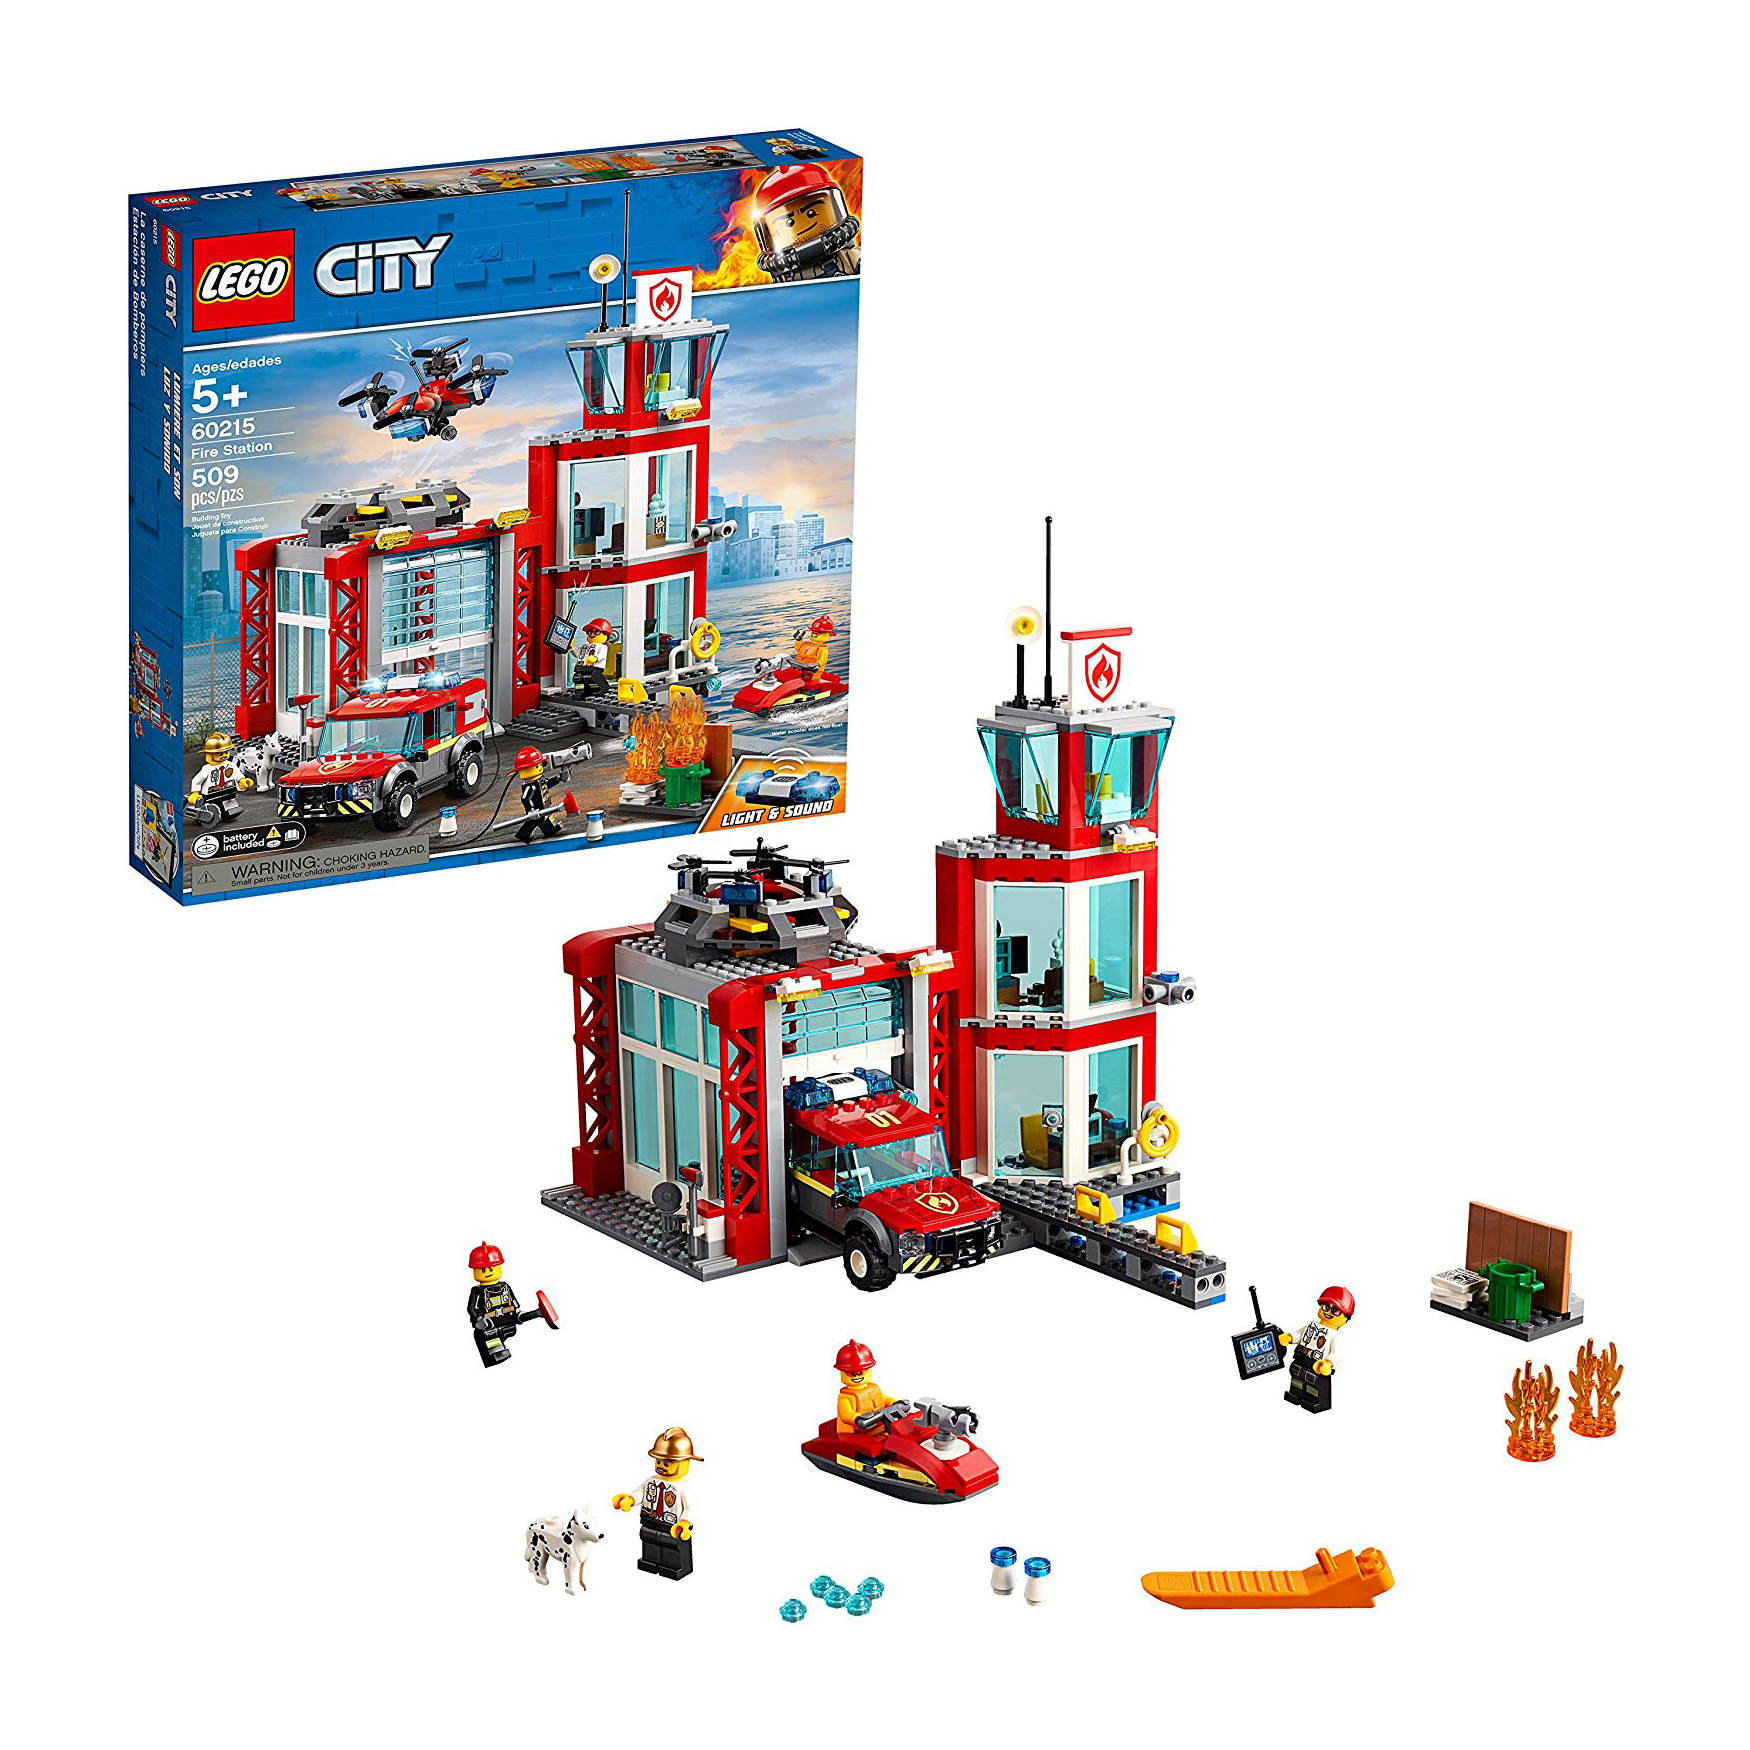 Cute Valentine's Day gifts for kids - LEGO City Fire Station Set